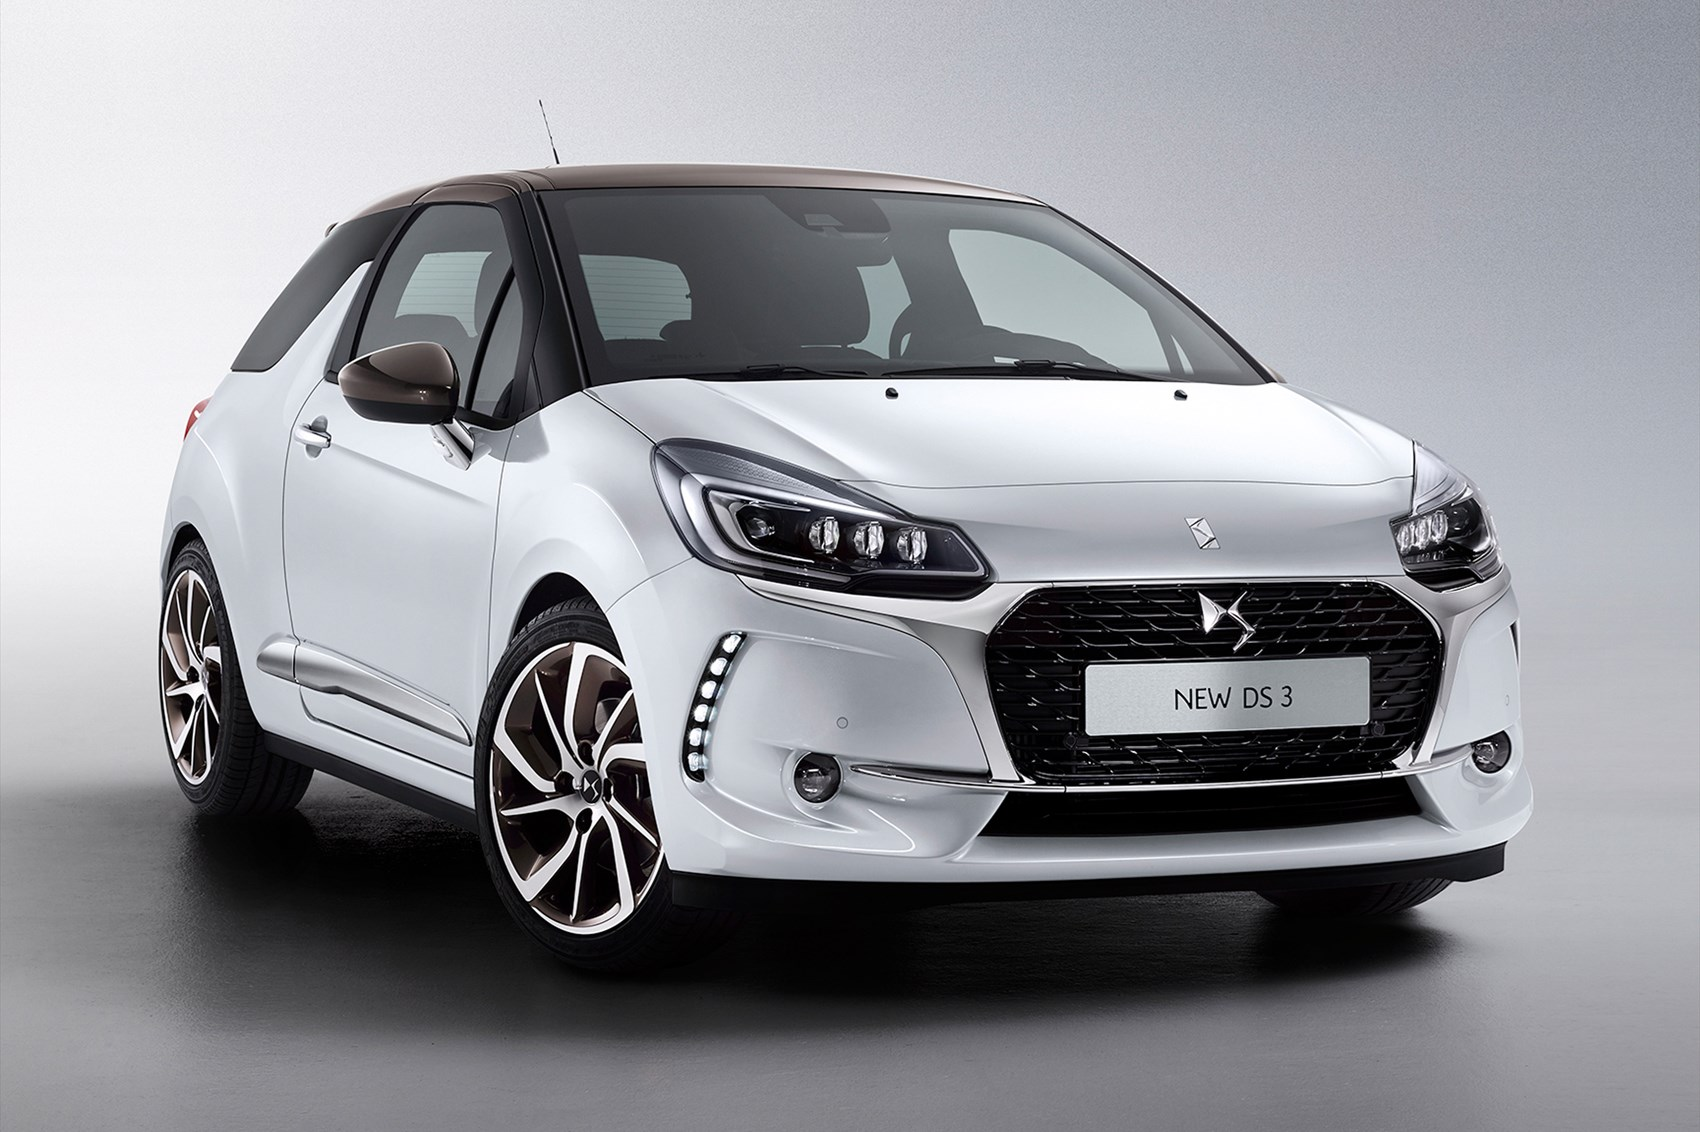 New Not A Citroen Ds3 And Ds3 Cabrio Revealed For 2016 By